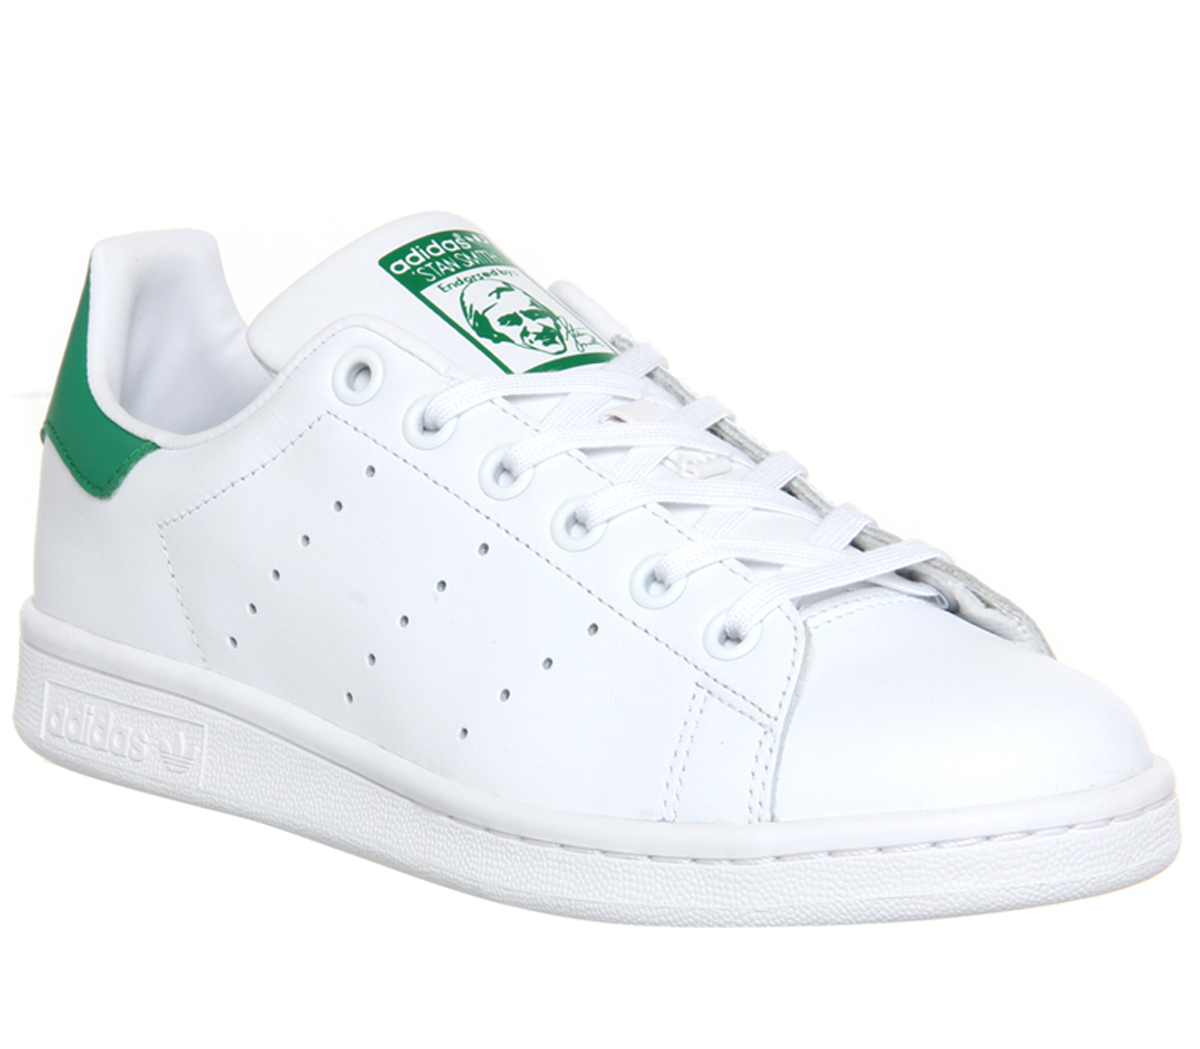 premium selection 227f8 c3398 Details about Mens Adidas Stan Smith Trainers Core White Green Trainers  Shoes